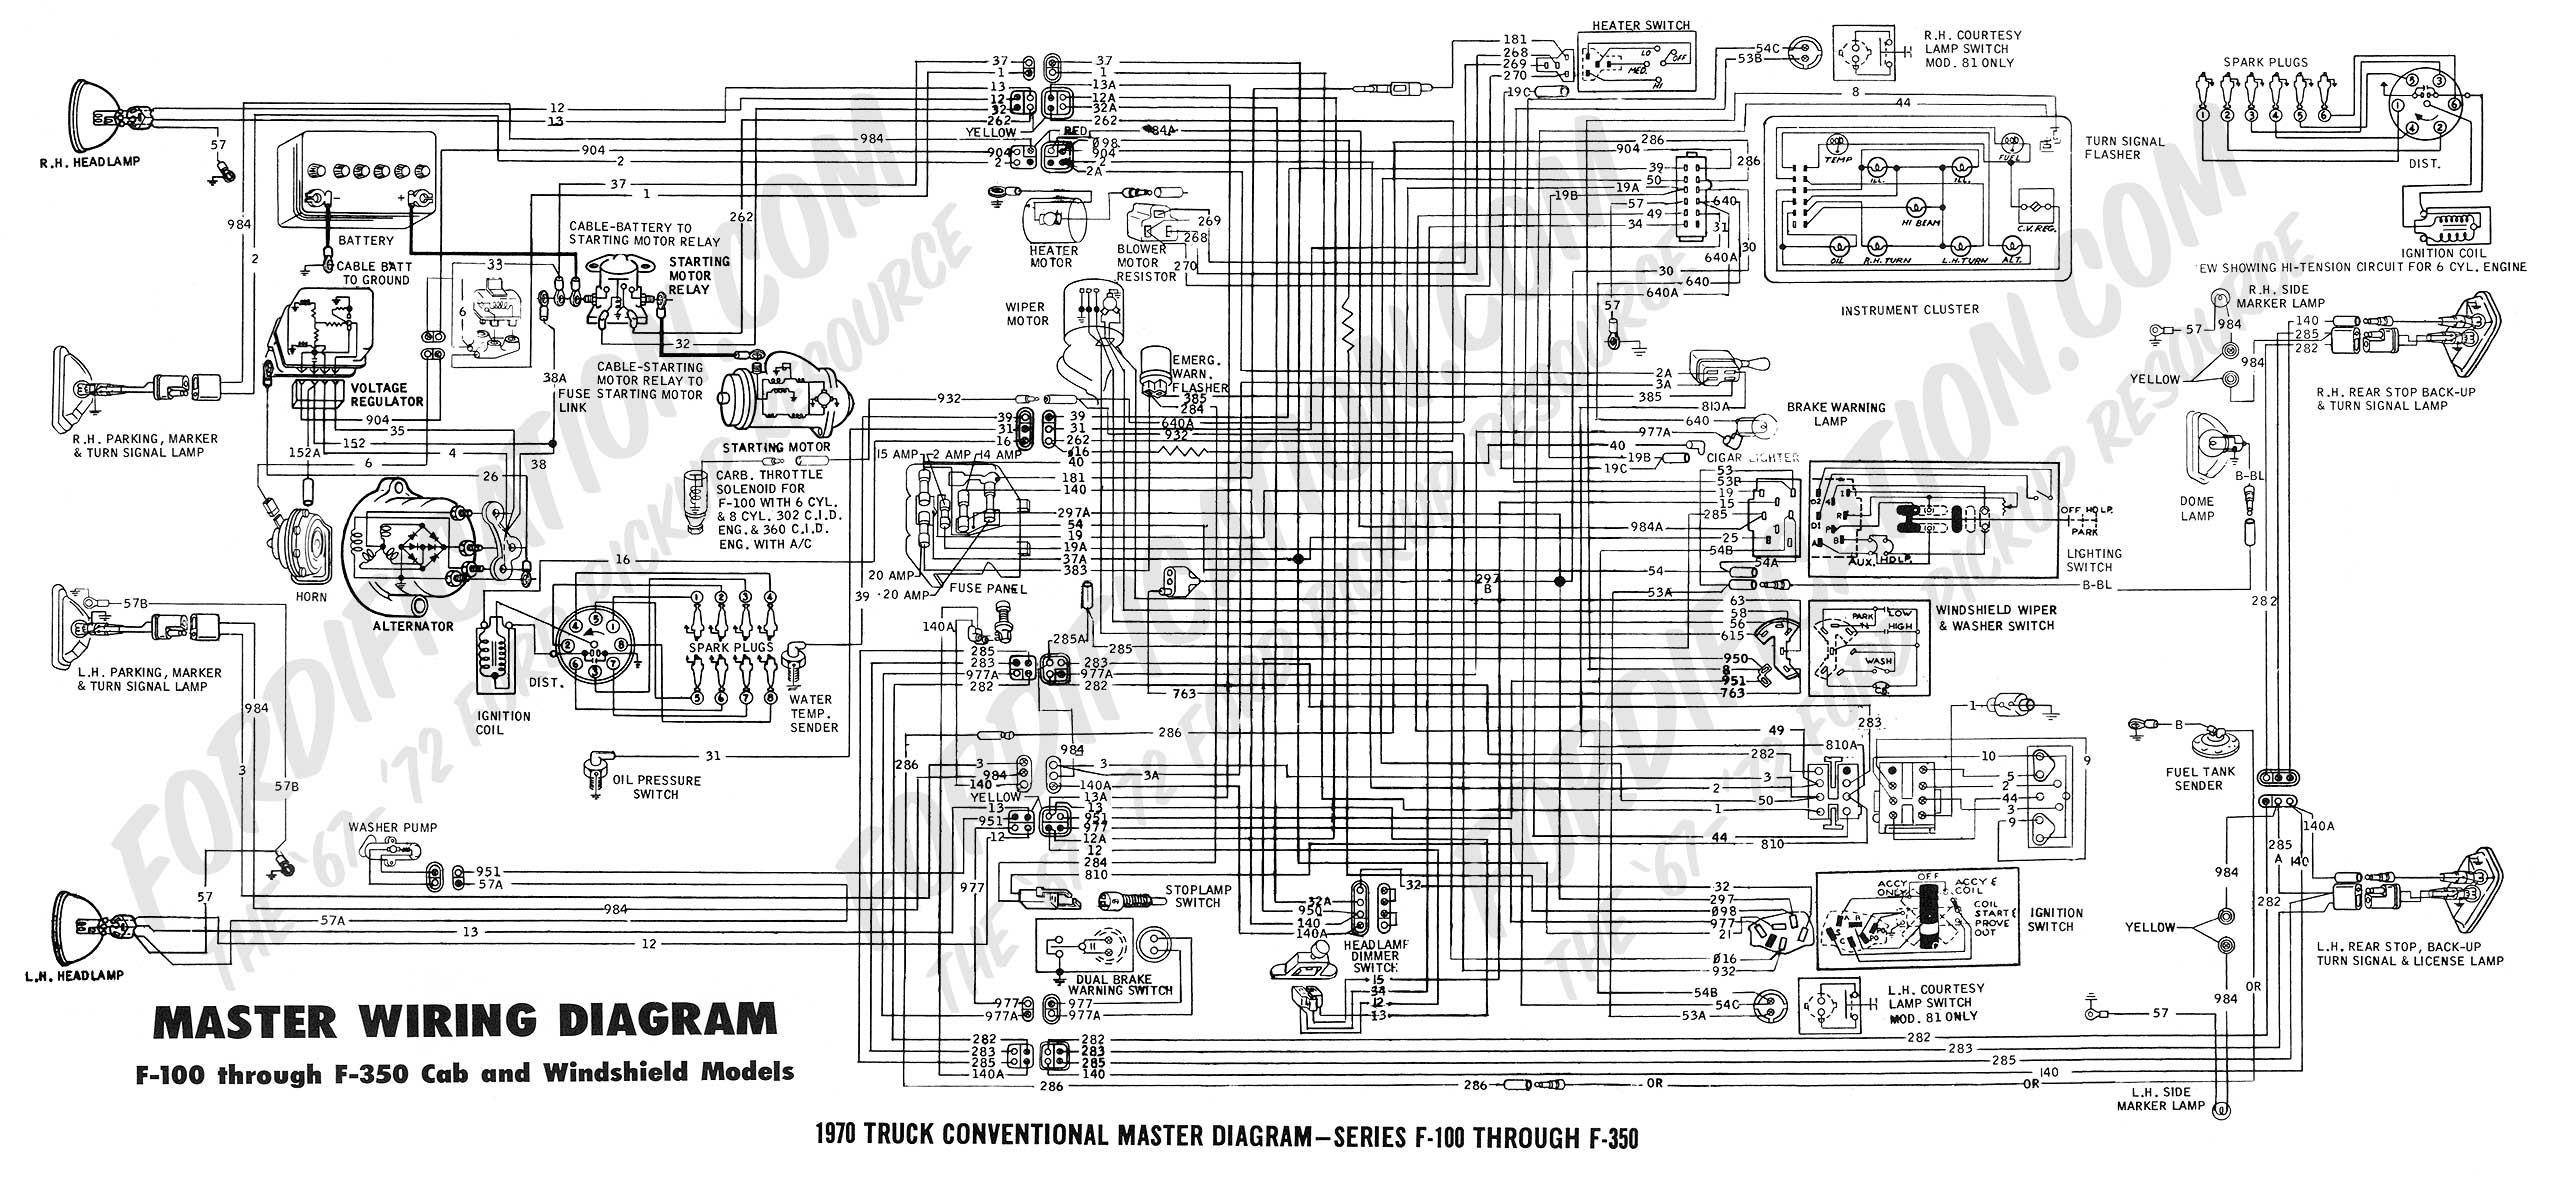 wiring diagram 70_master ford truck technical drawings and schematics section h wiring 1999 Ford Expedition Problems at mifinder.co